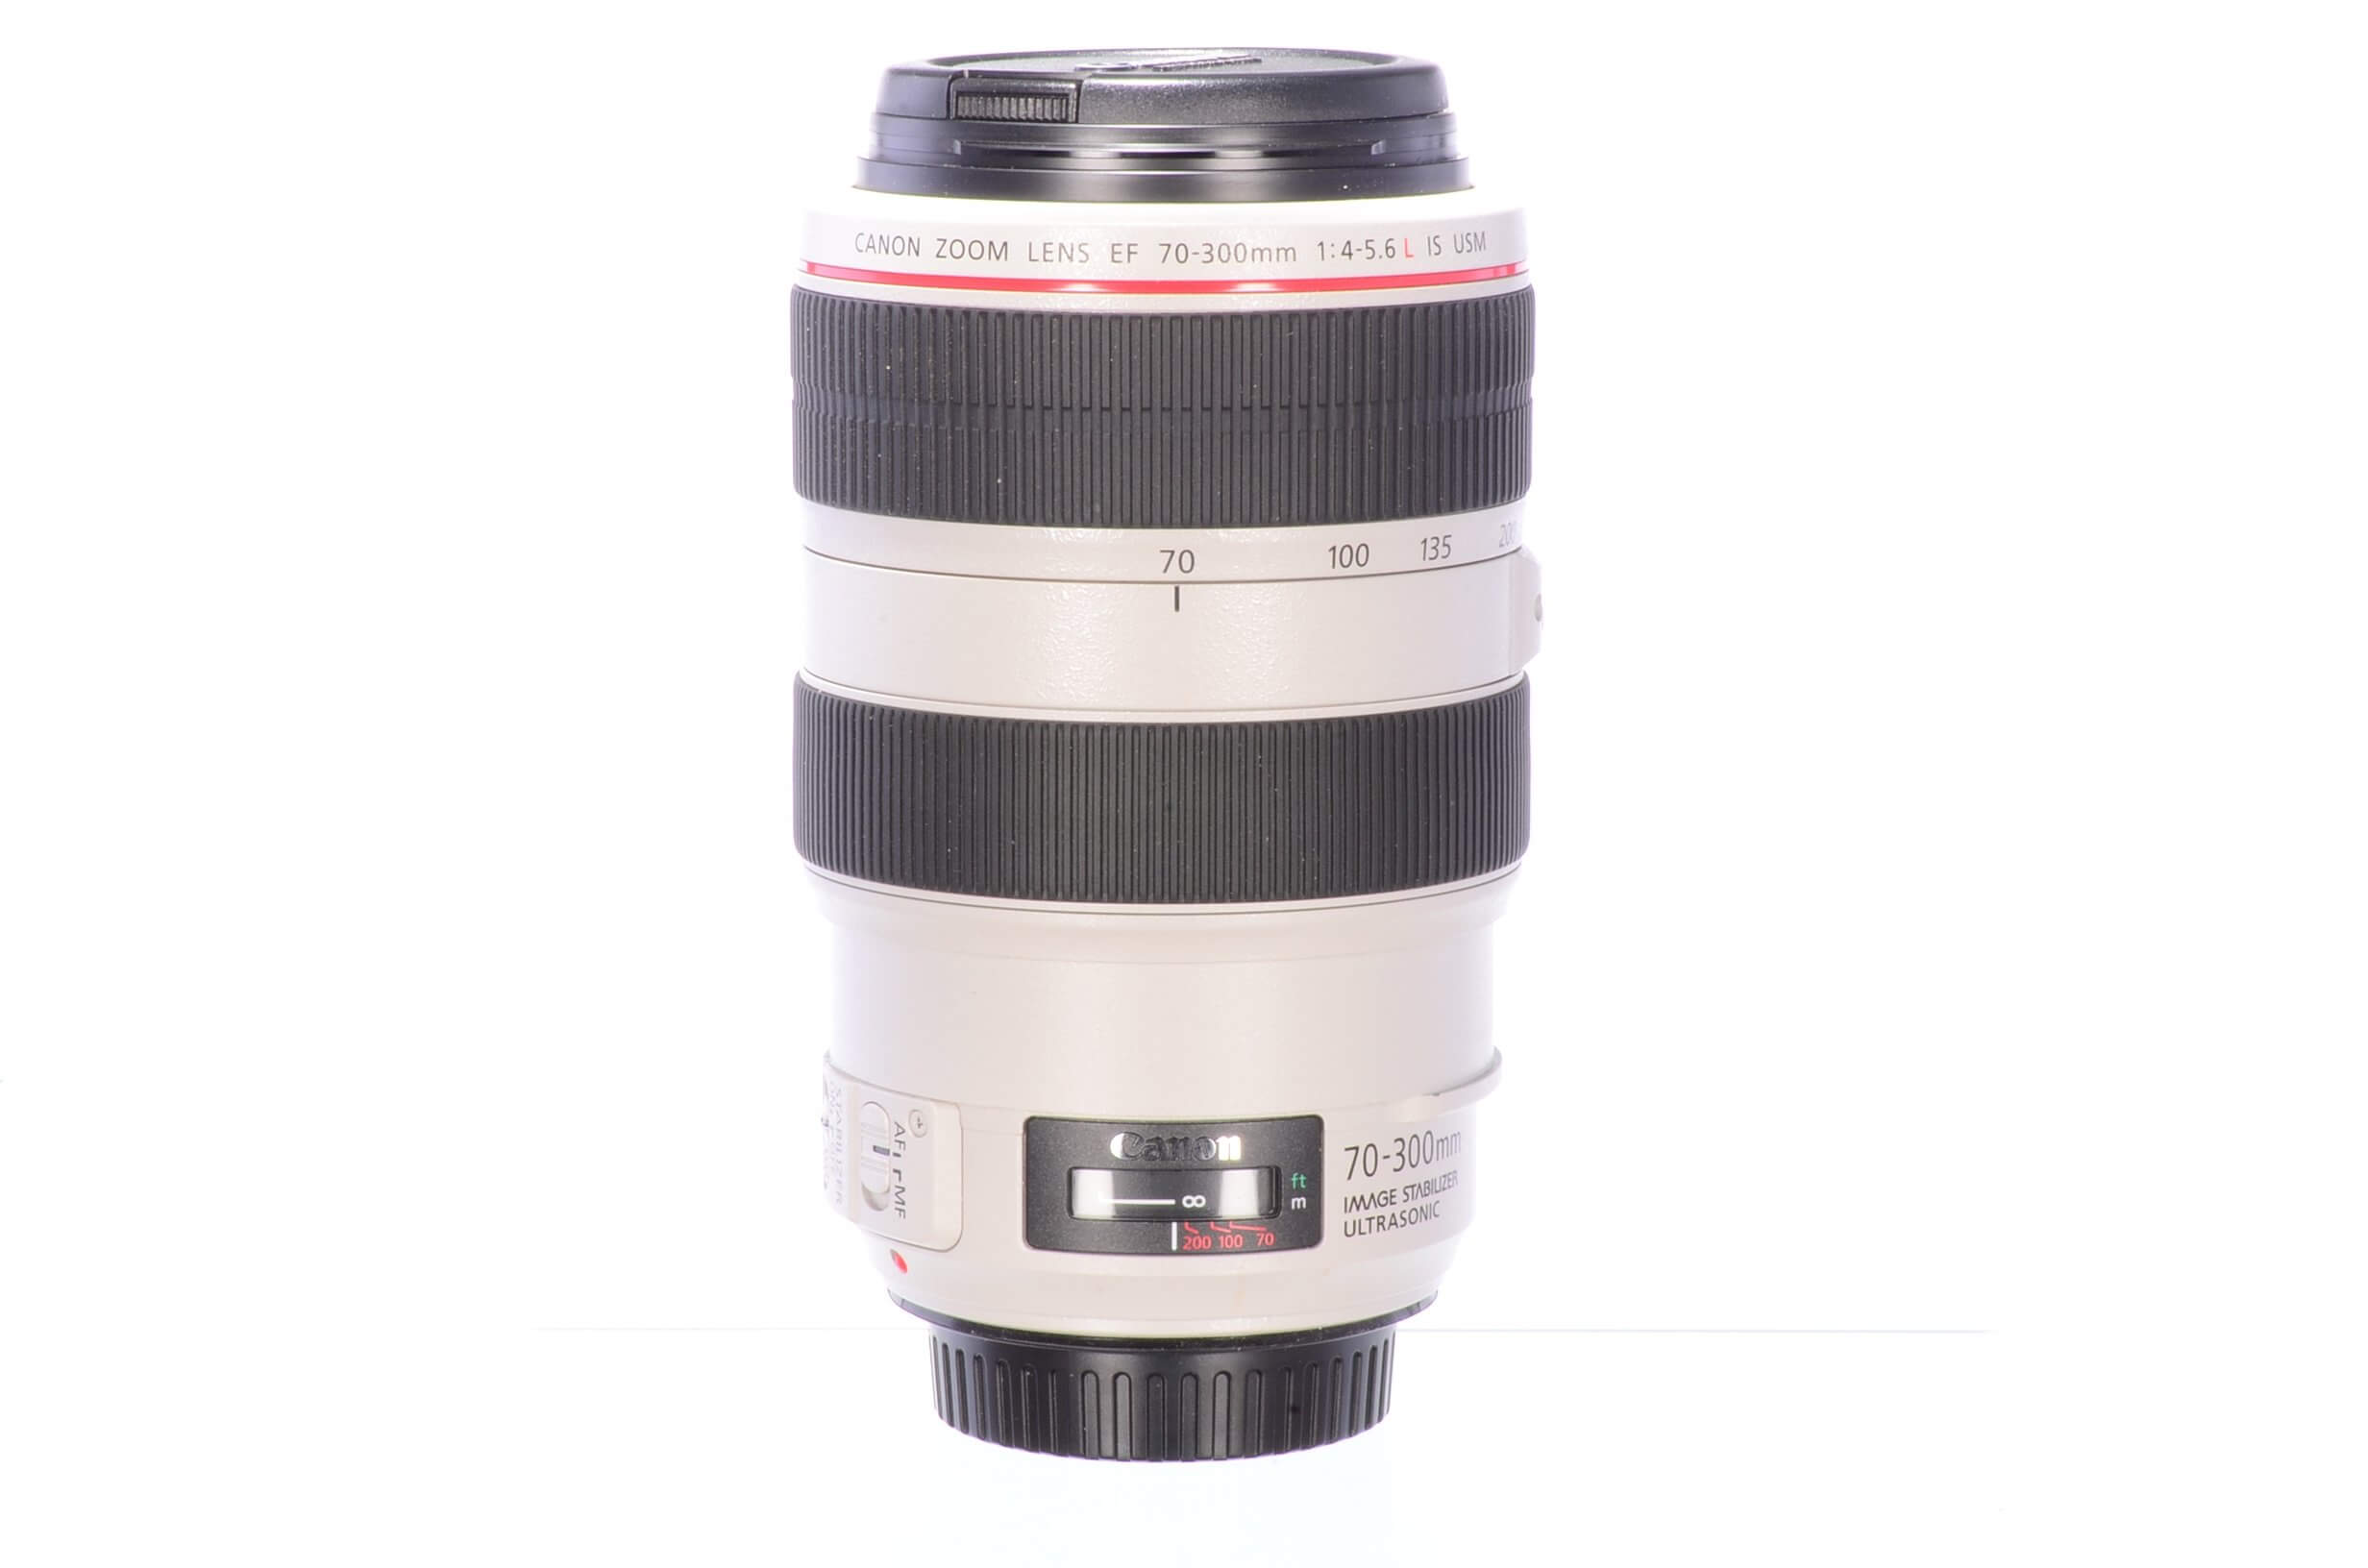 Canon 70-300mm f4-5.6 L IS USM, boxed, MINT!